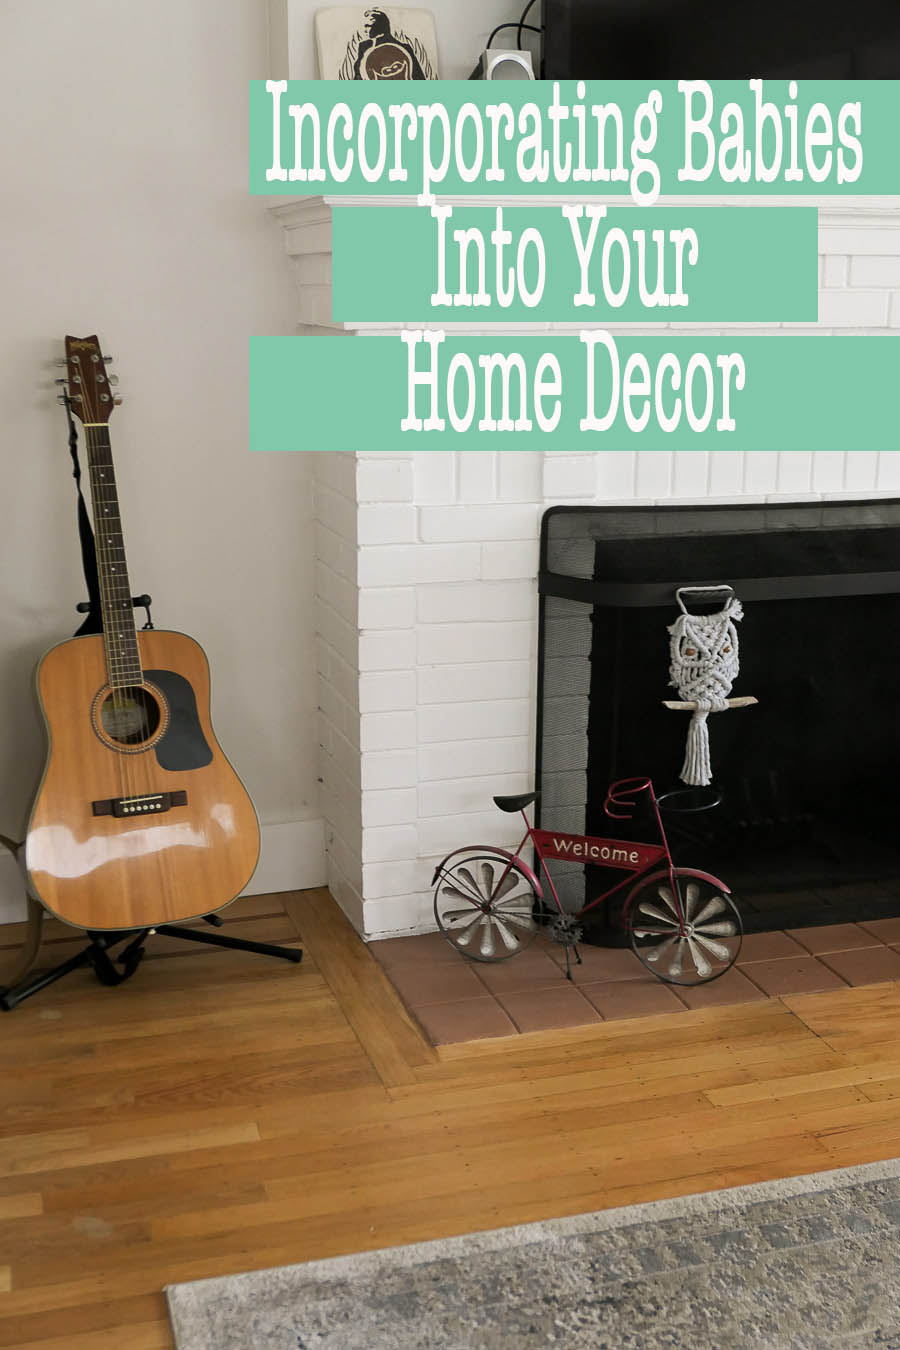 Tips and Ideas for Incorporating Babies Into Your Home Decor. How to organize baby stuff in living room and home. Don't let baby gear take over your home.